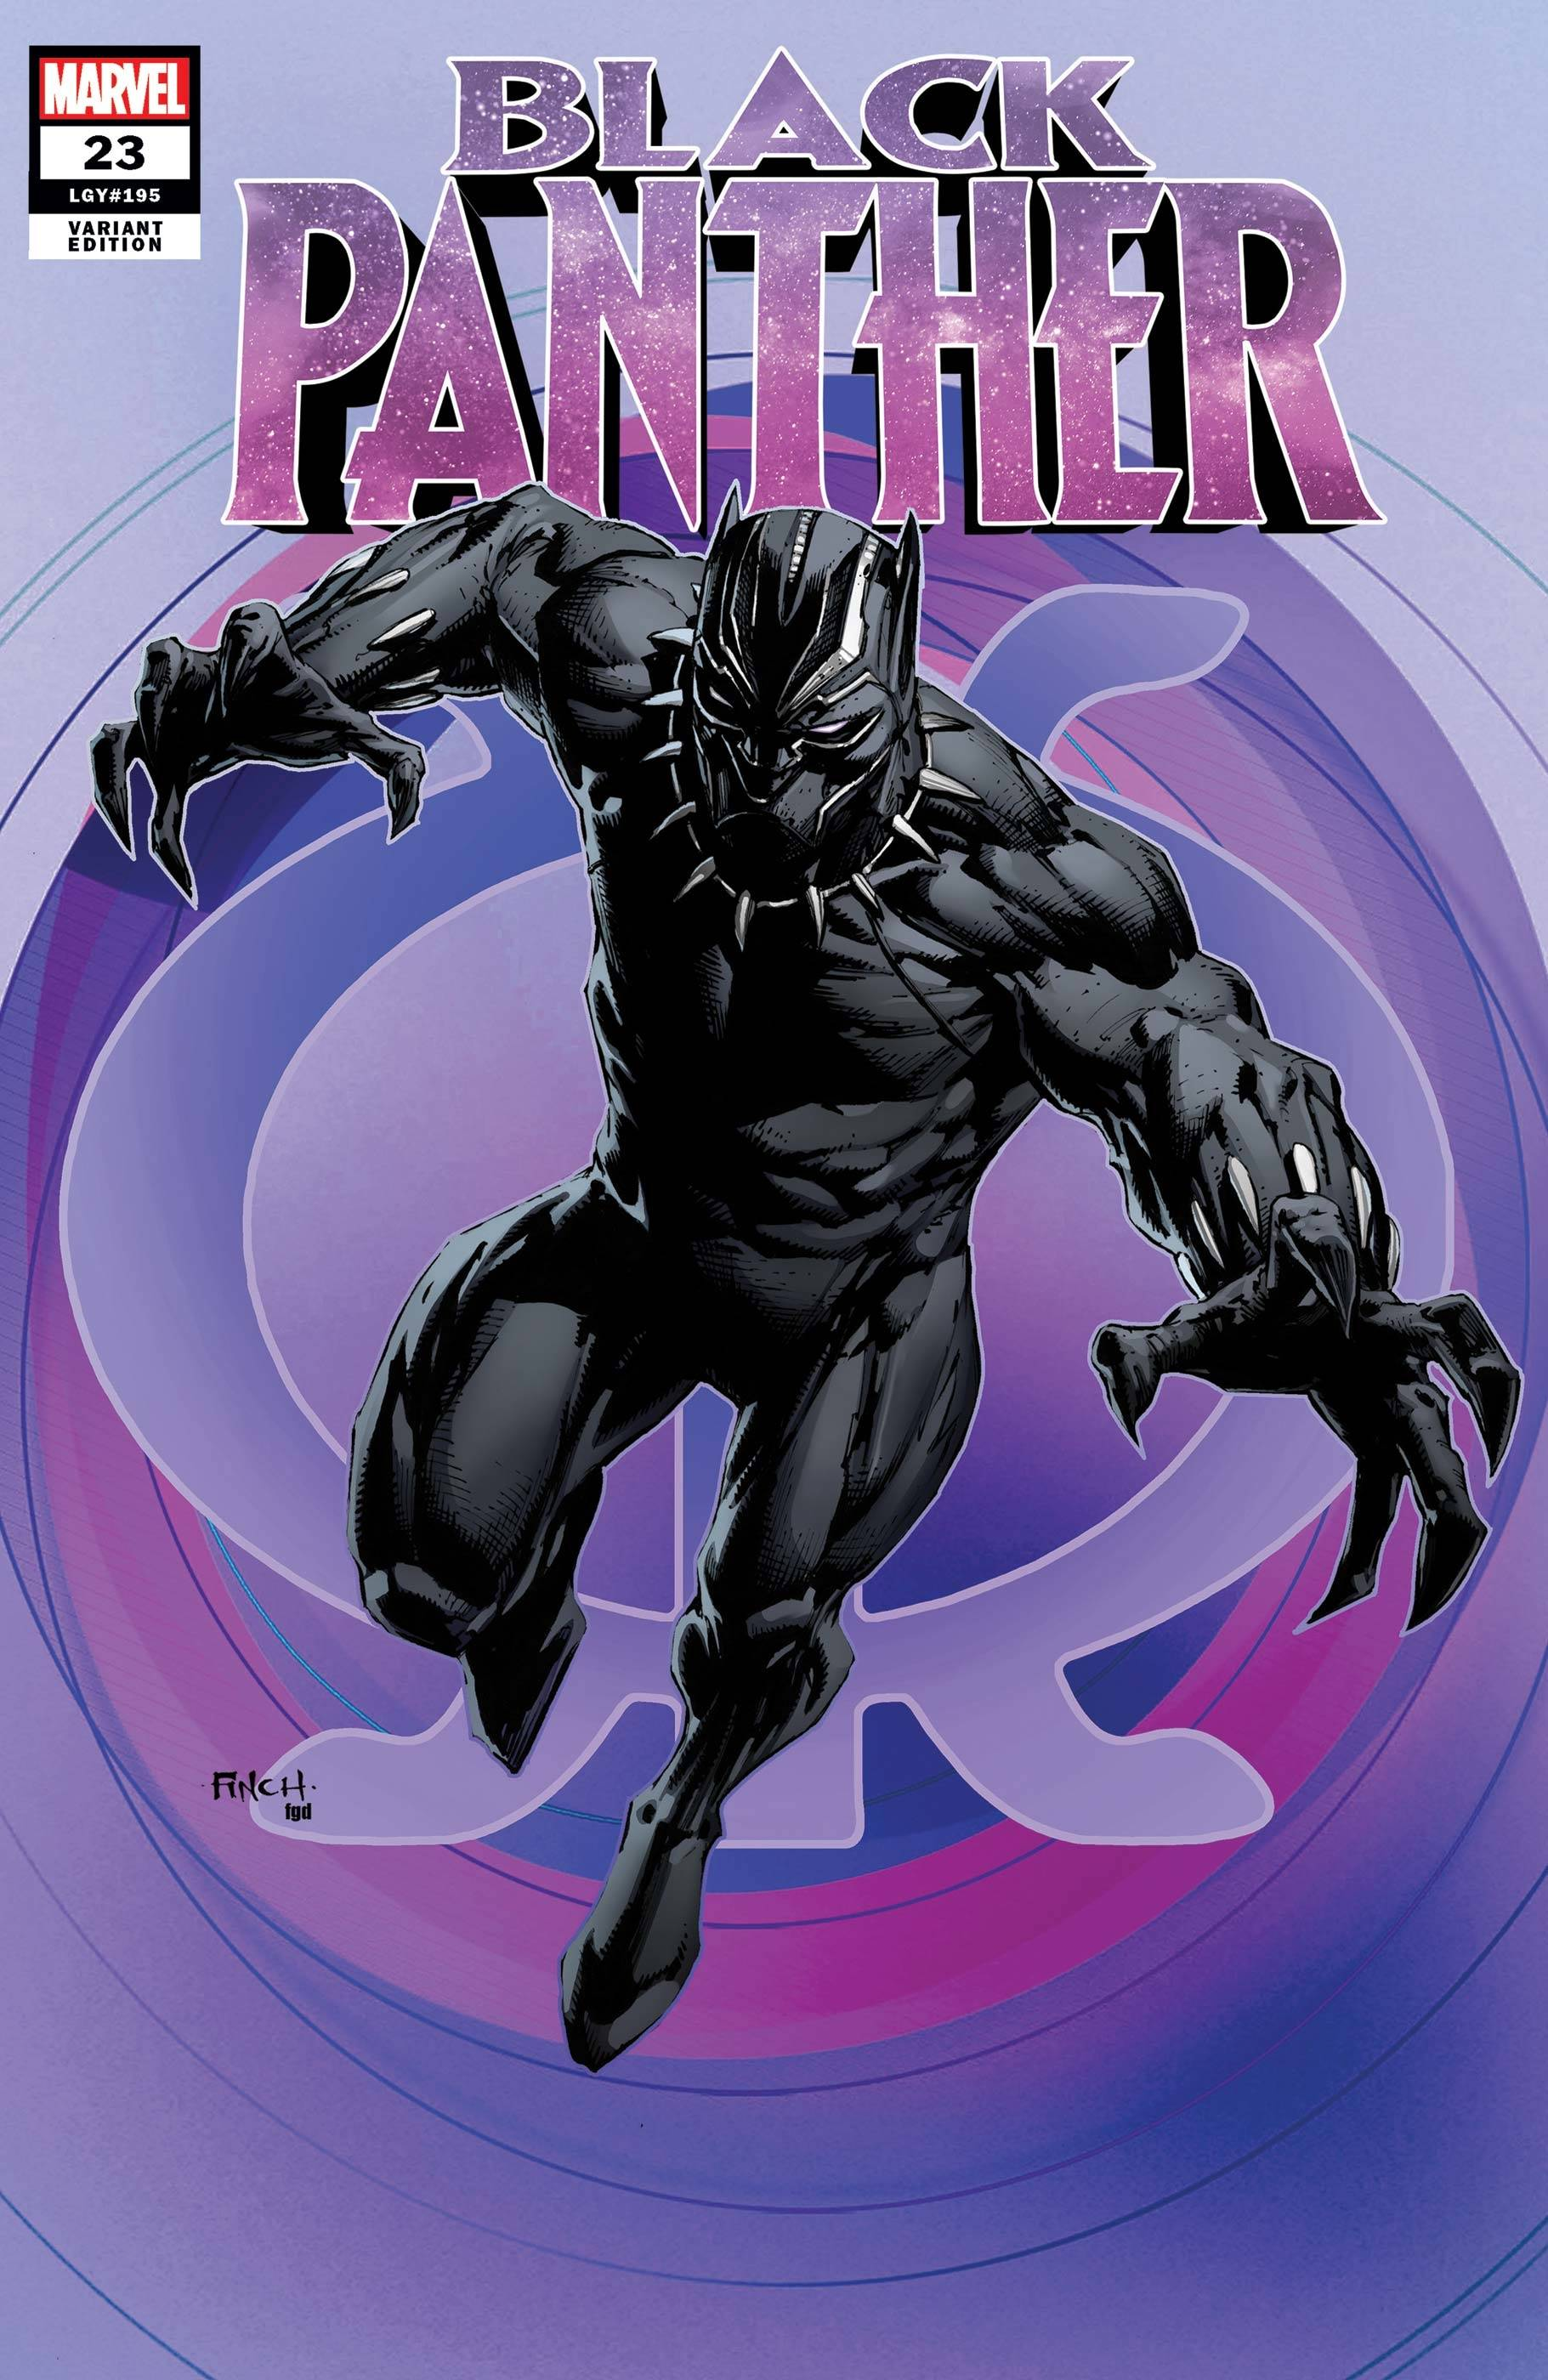 BLACK PANTHER #23 FINCH VAR